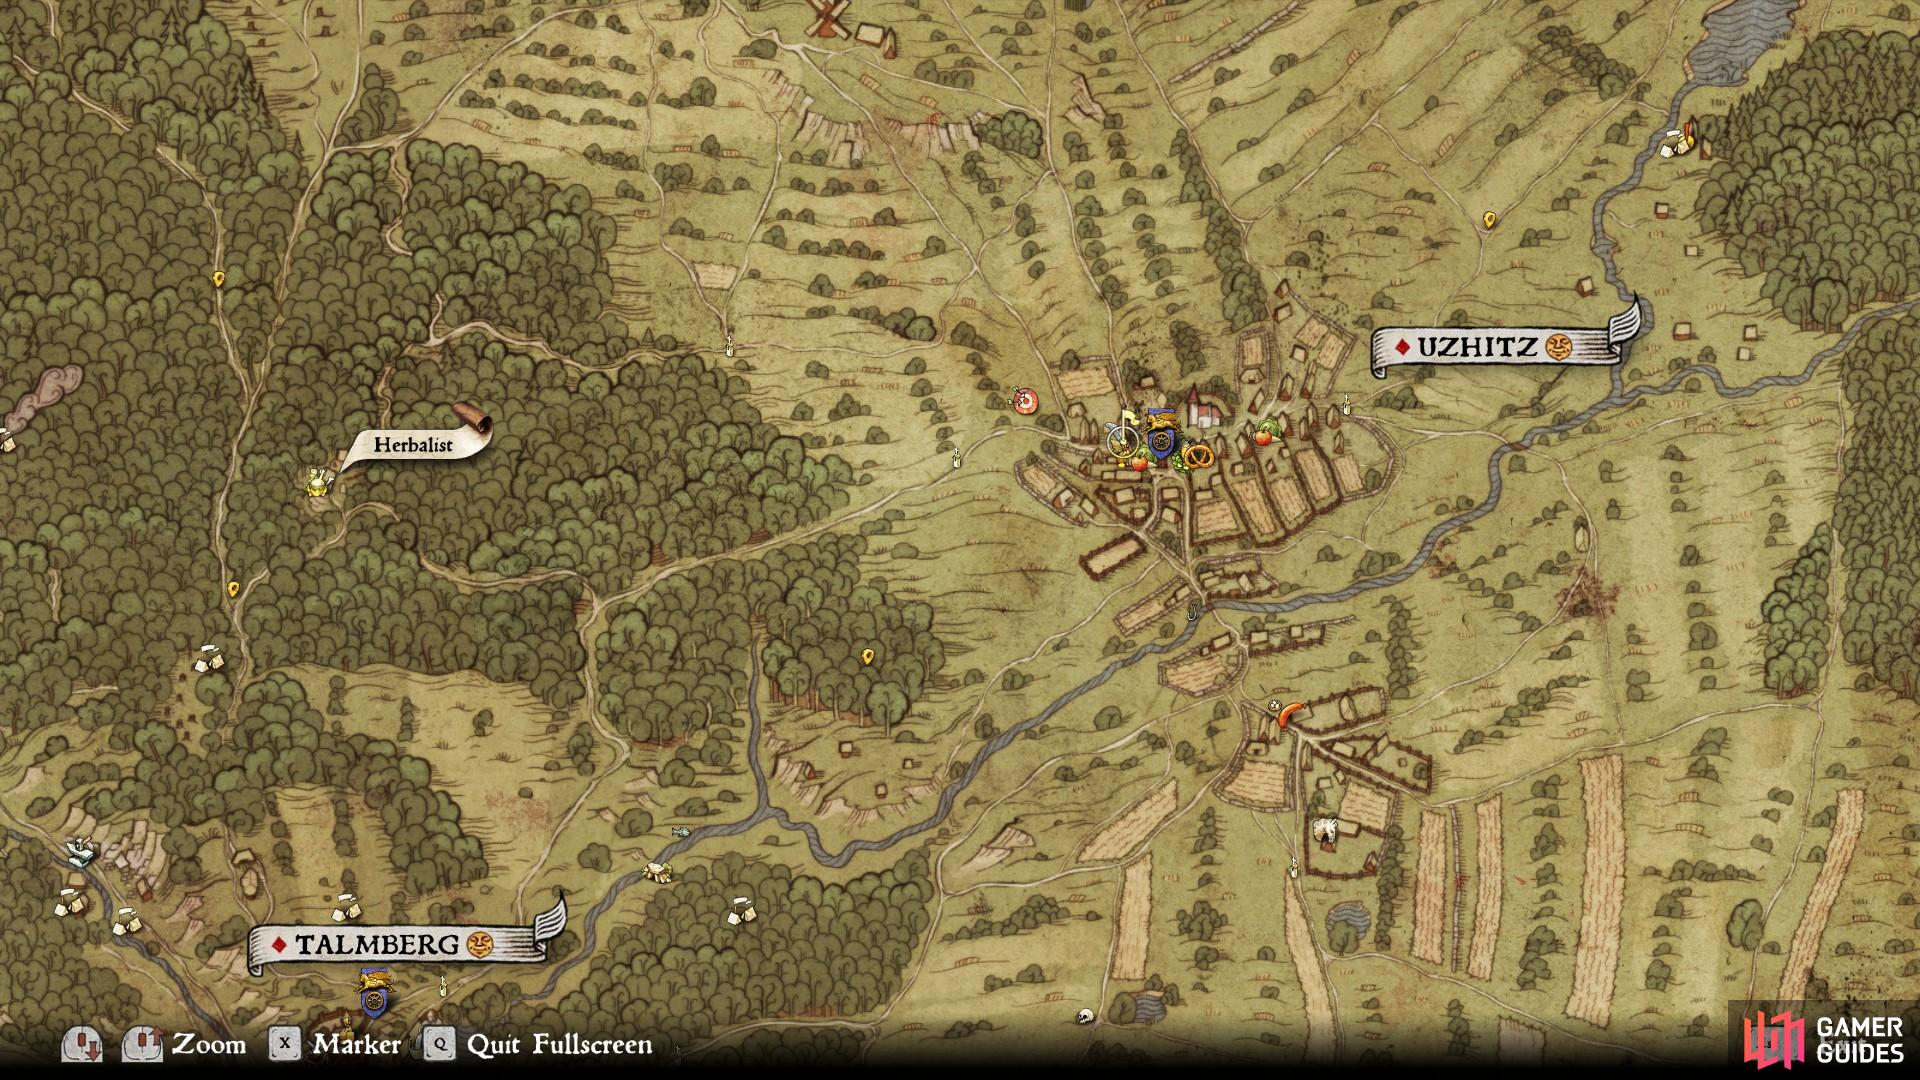 The location of the Herbalist west of Uzhitz. This is also the location of Gertrude, the woman who can train you in Herbalism.